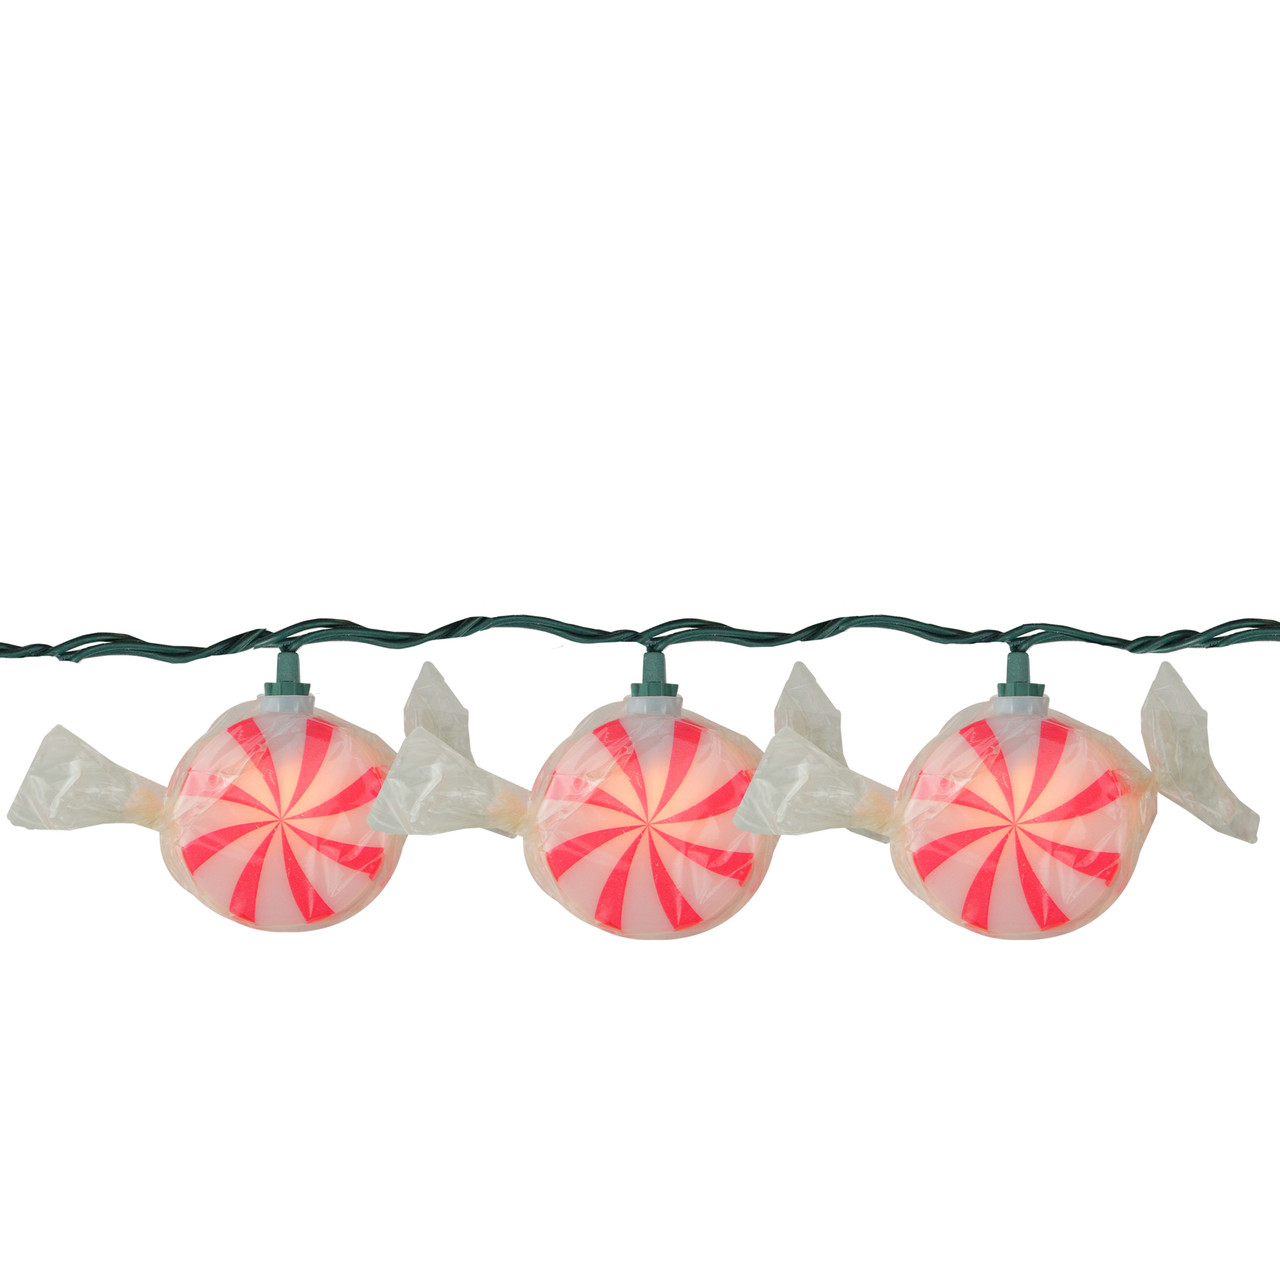 Set Of 10 Red And White Peppermint Twist Candy Christmas Lights 10 Ft Green Wire 5983702